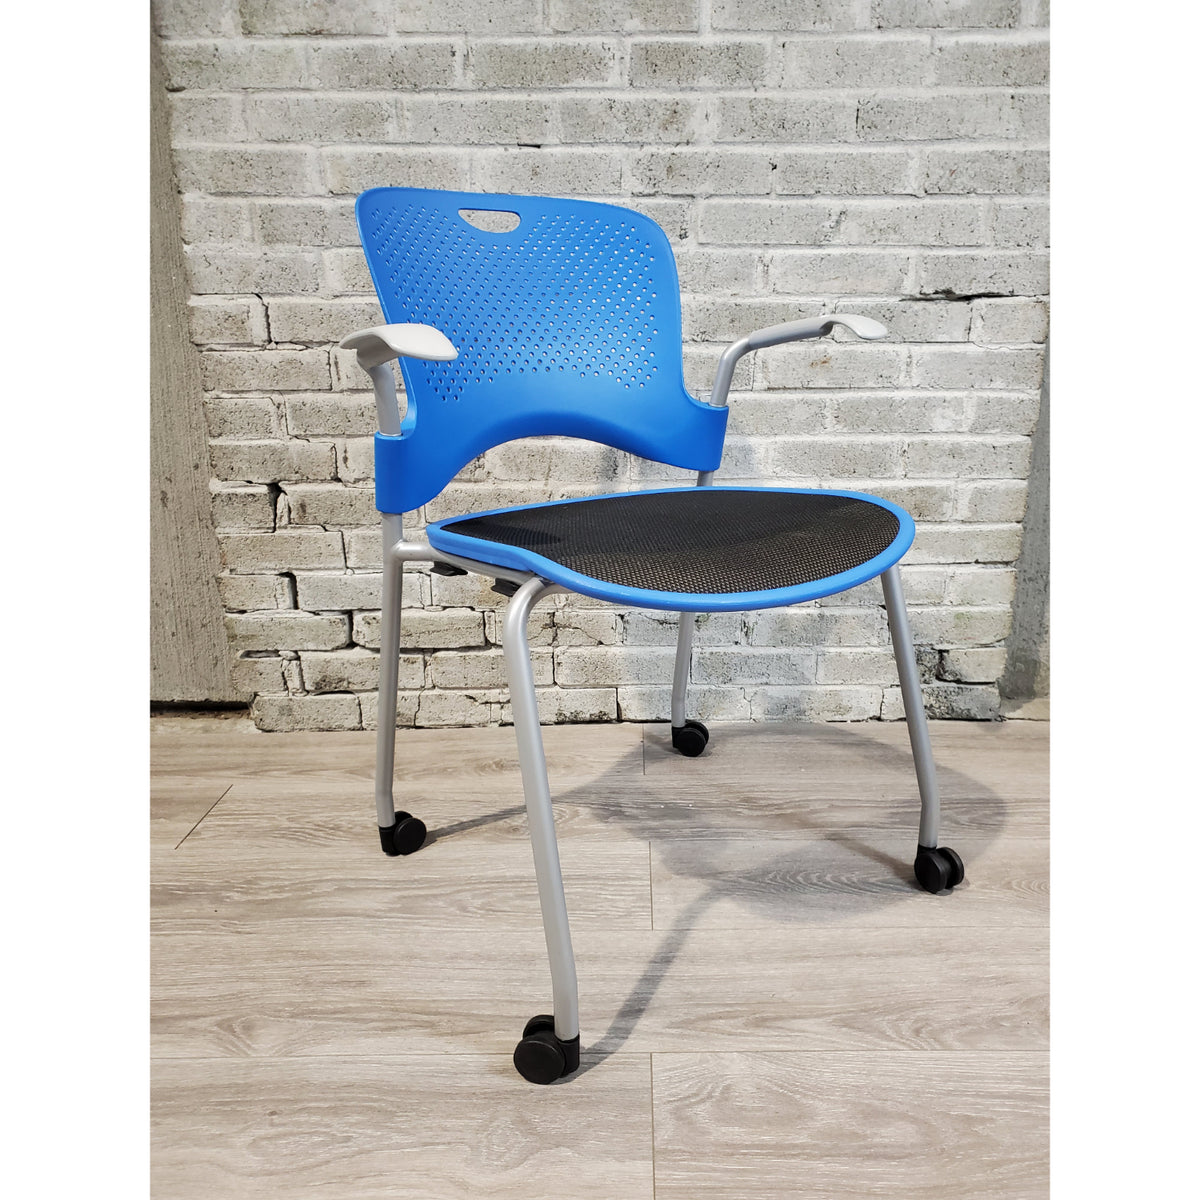 Pre-Owned - Used Herman Miller Caper Side Chair with Casters - Blue - Duckys Office Furniture